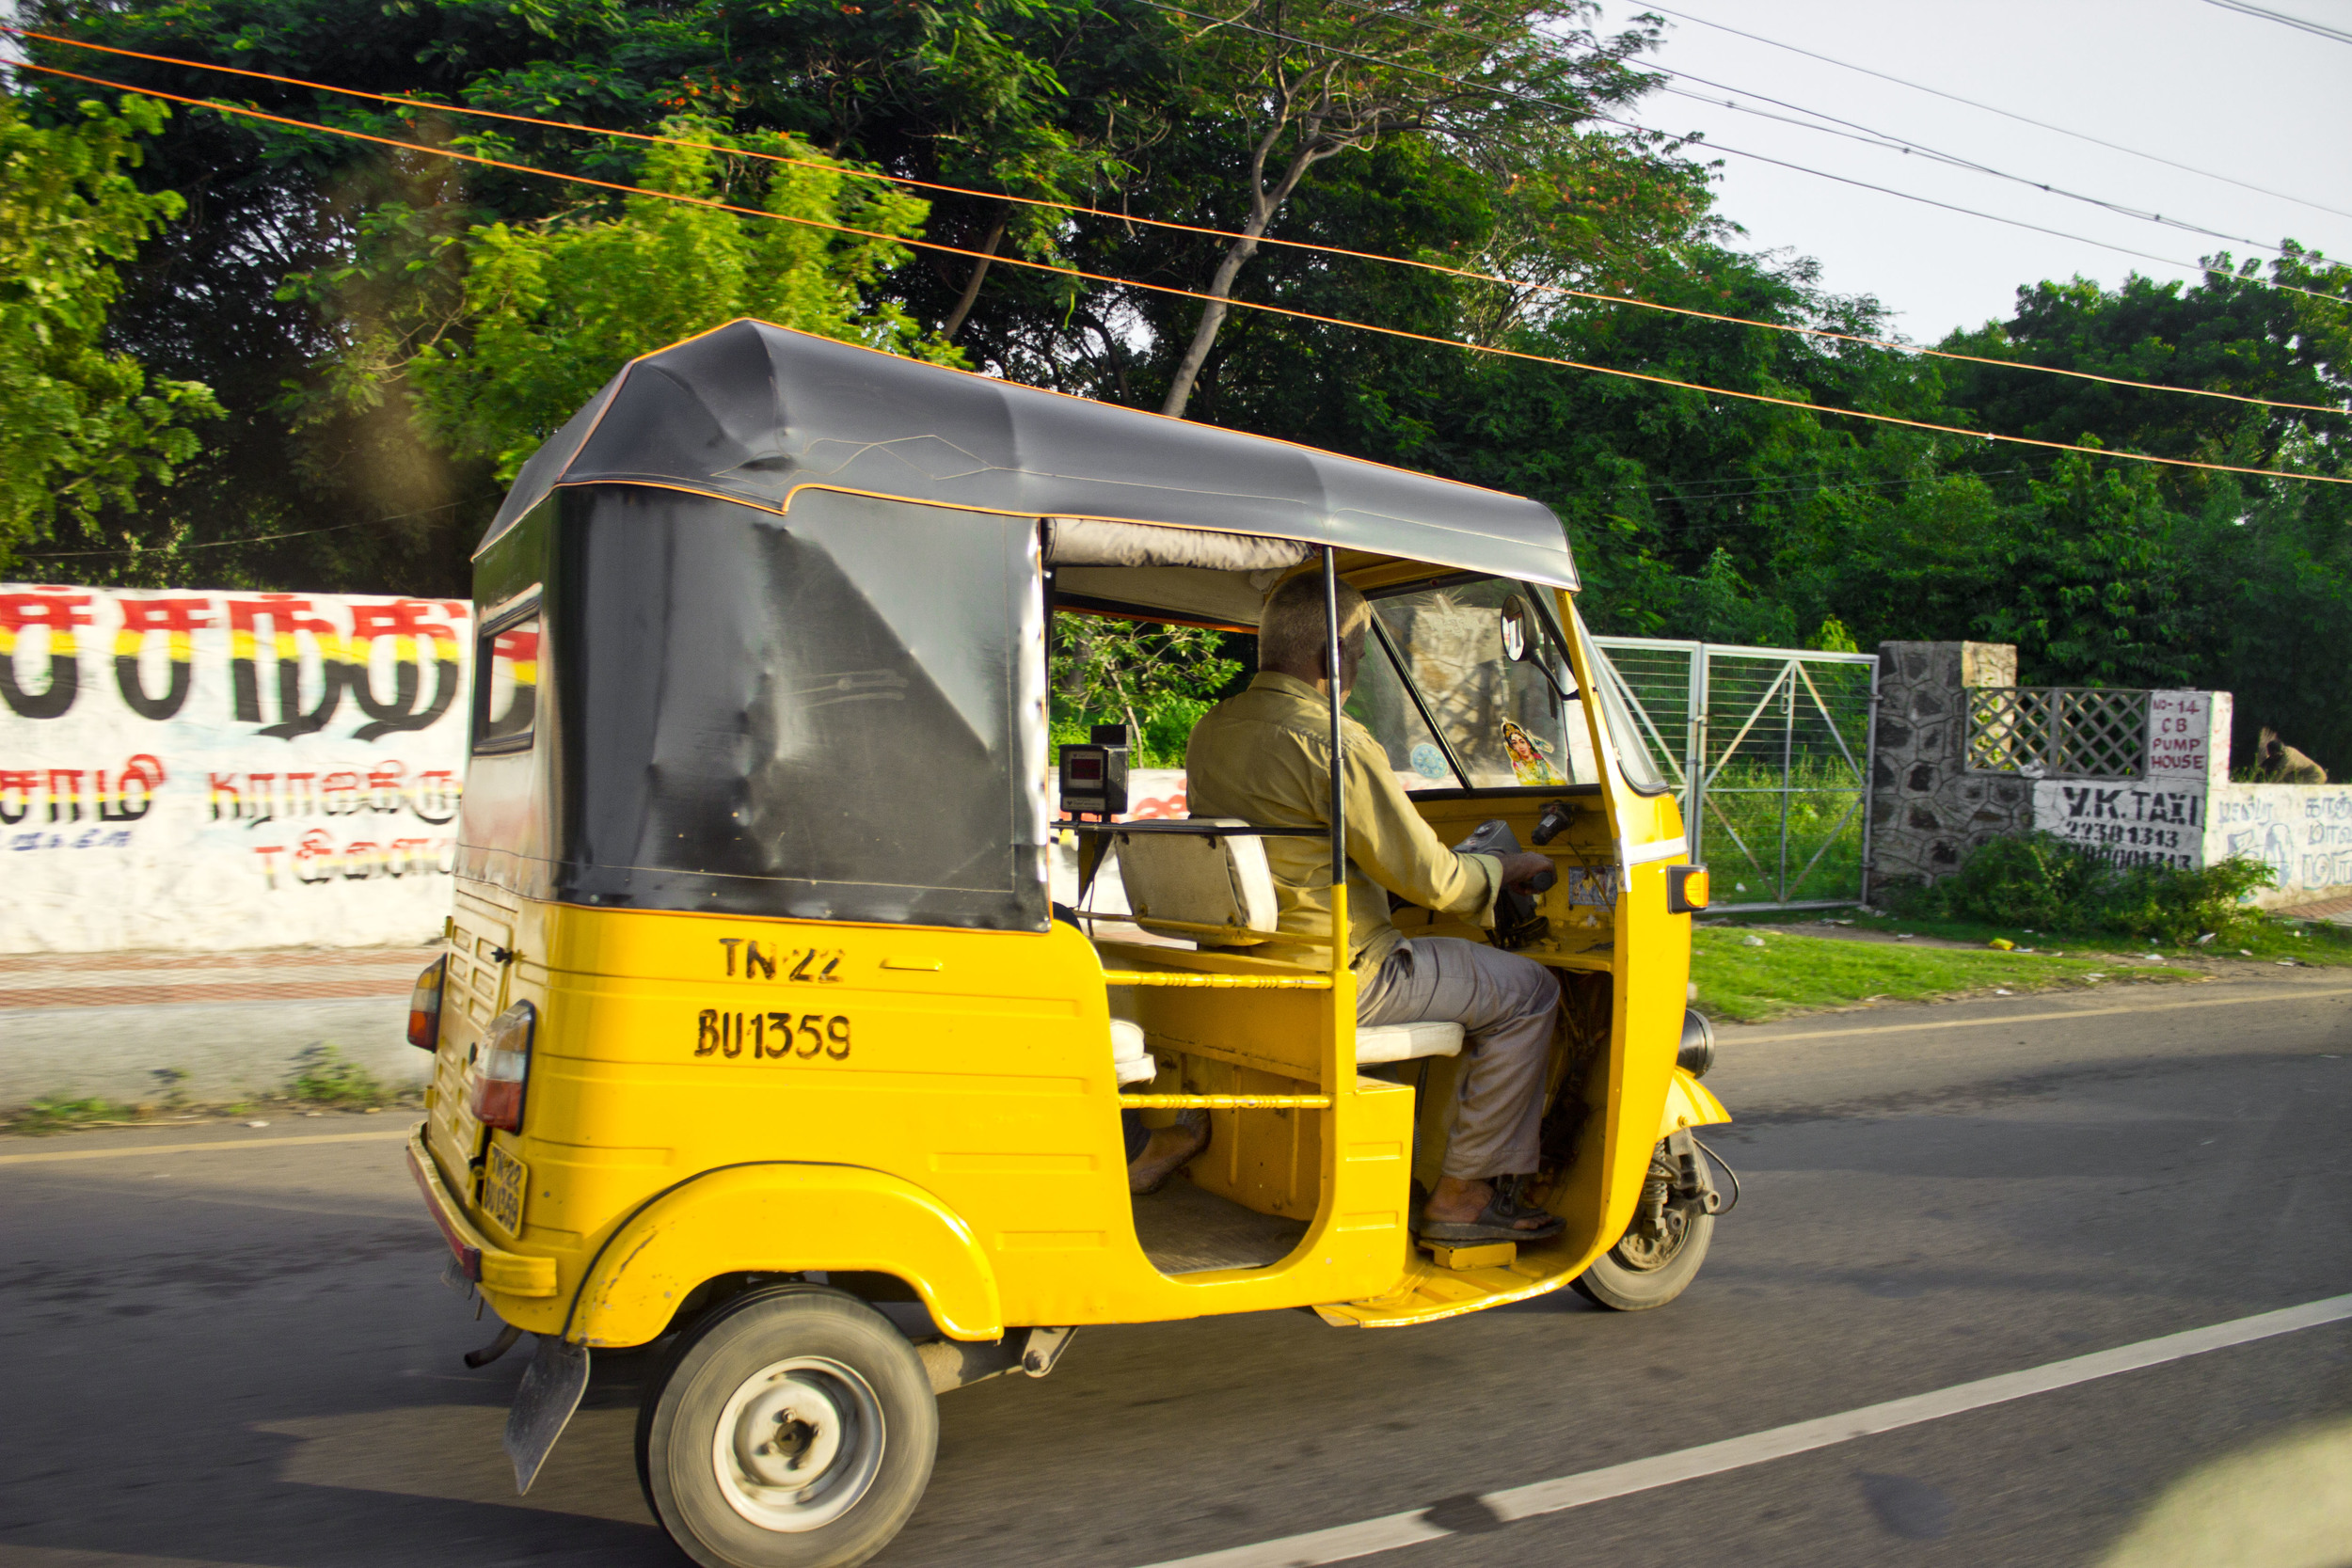 Just your average auto-rikshaw from India